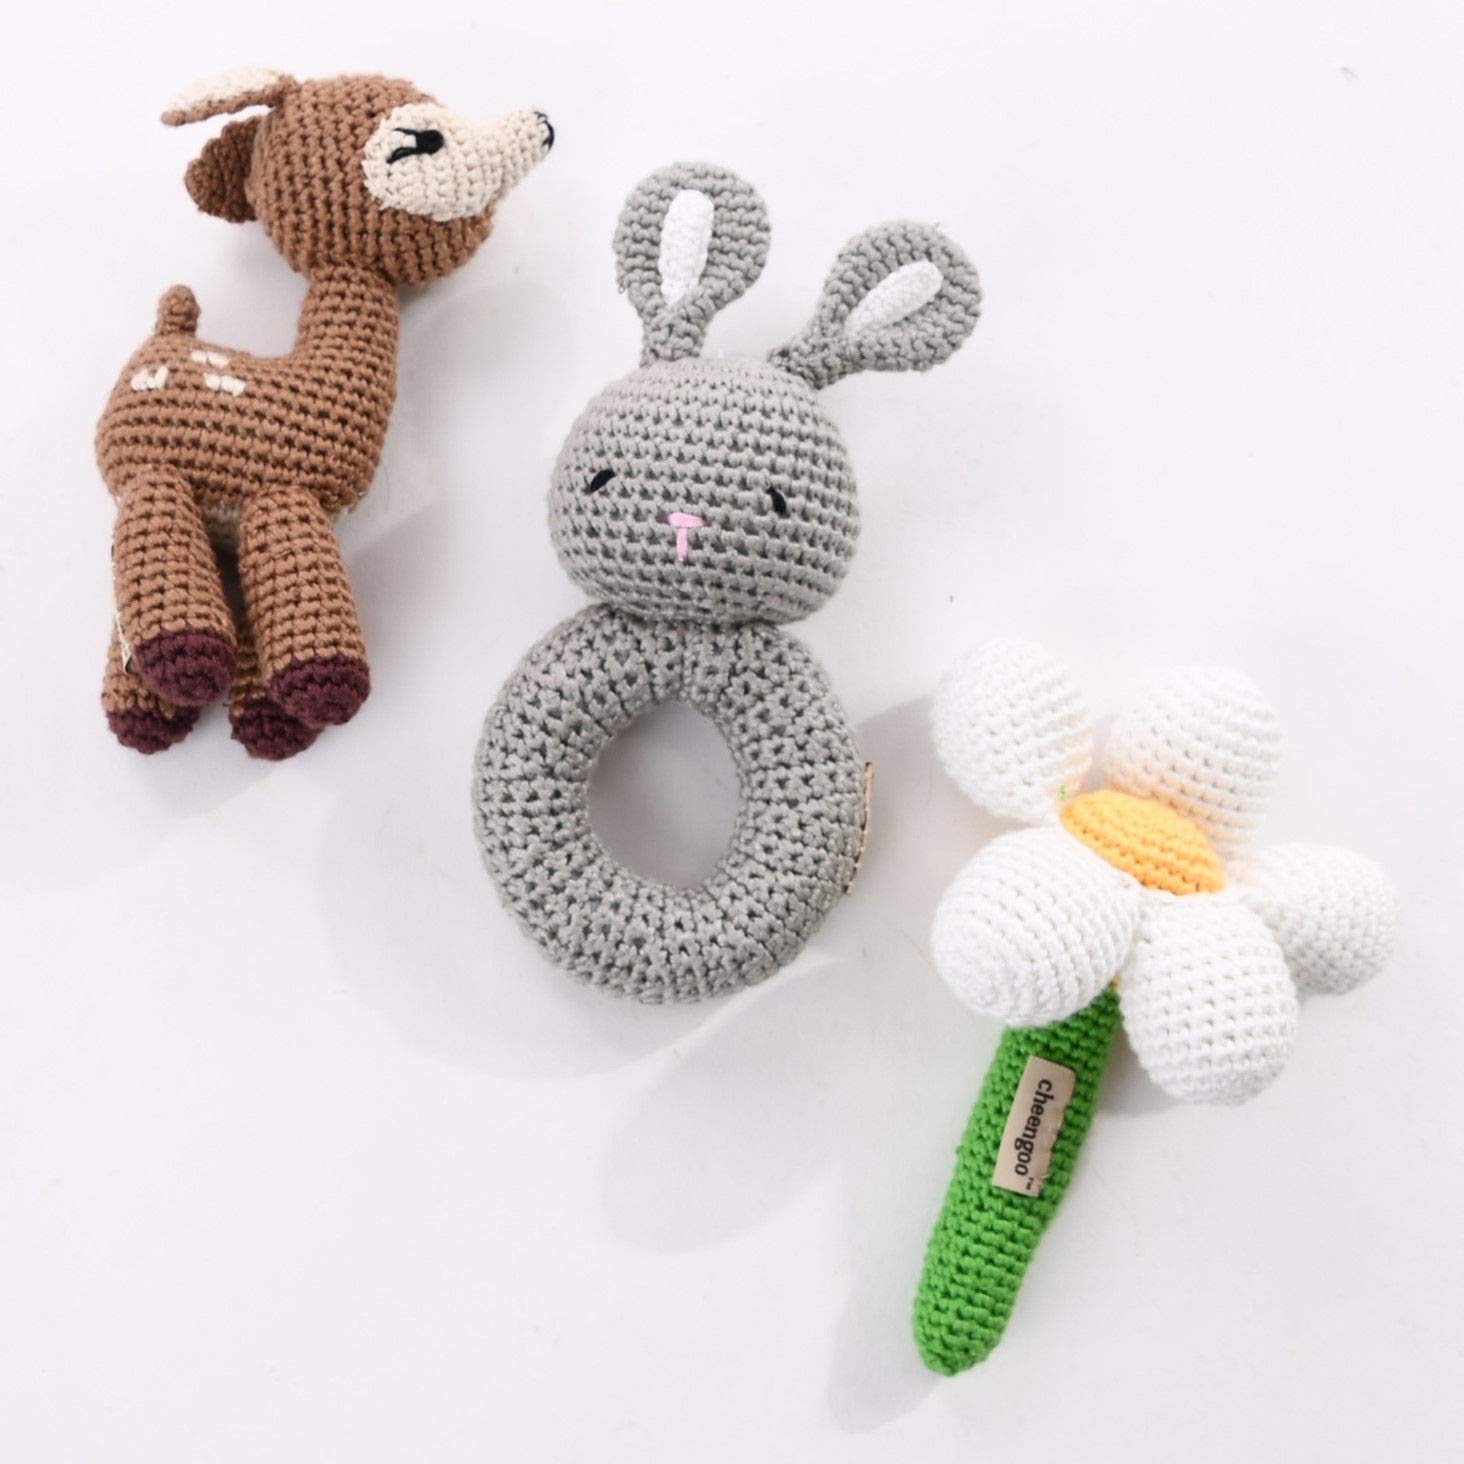 Cheengoo Organic Baby Toy Rattles - Crochet Woodland Themed Set of 3